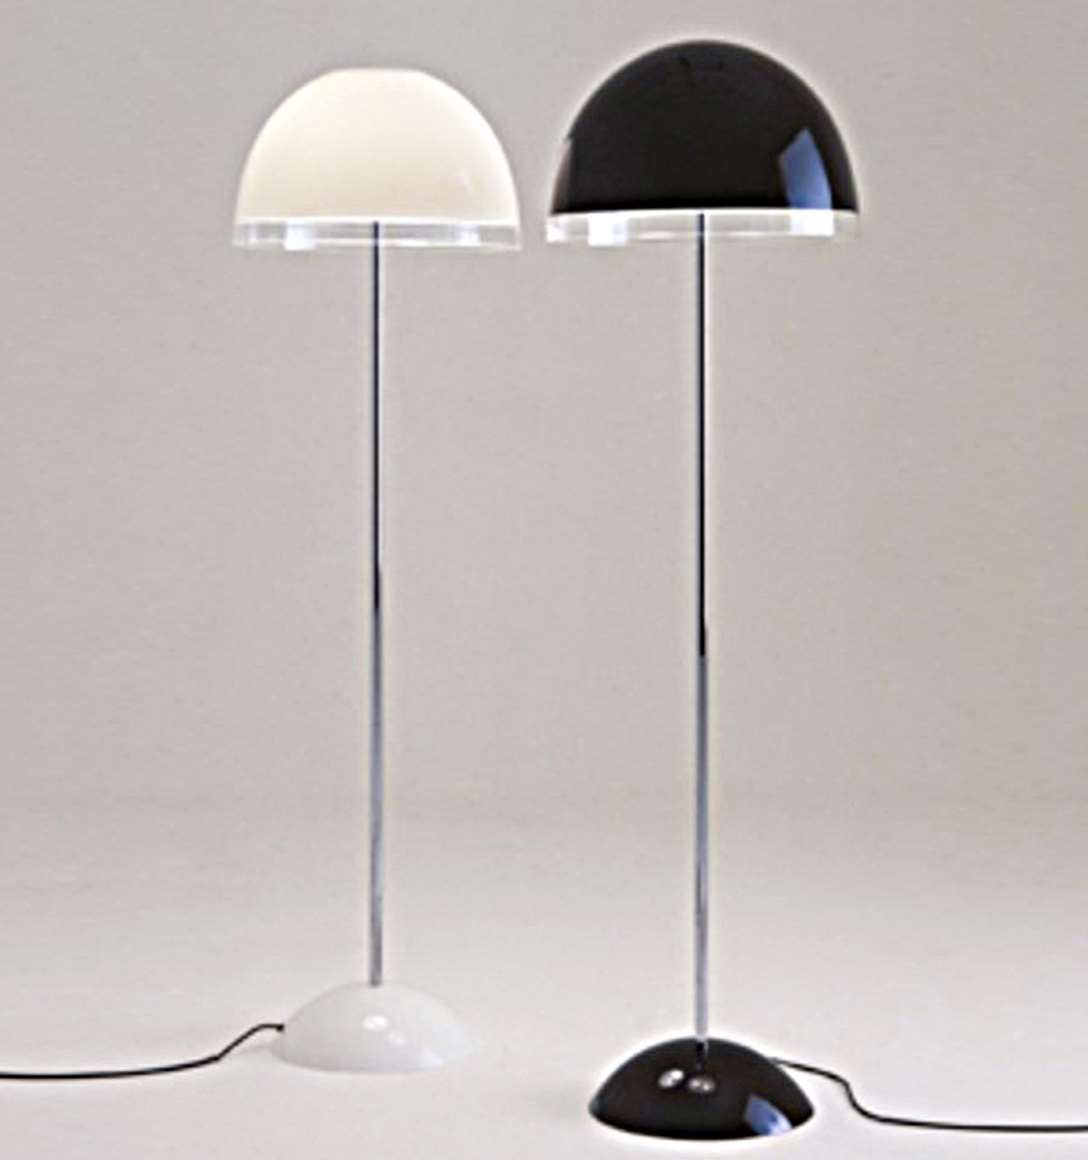 iGuzzini Baobab Floor Lamps - Catalogue picture